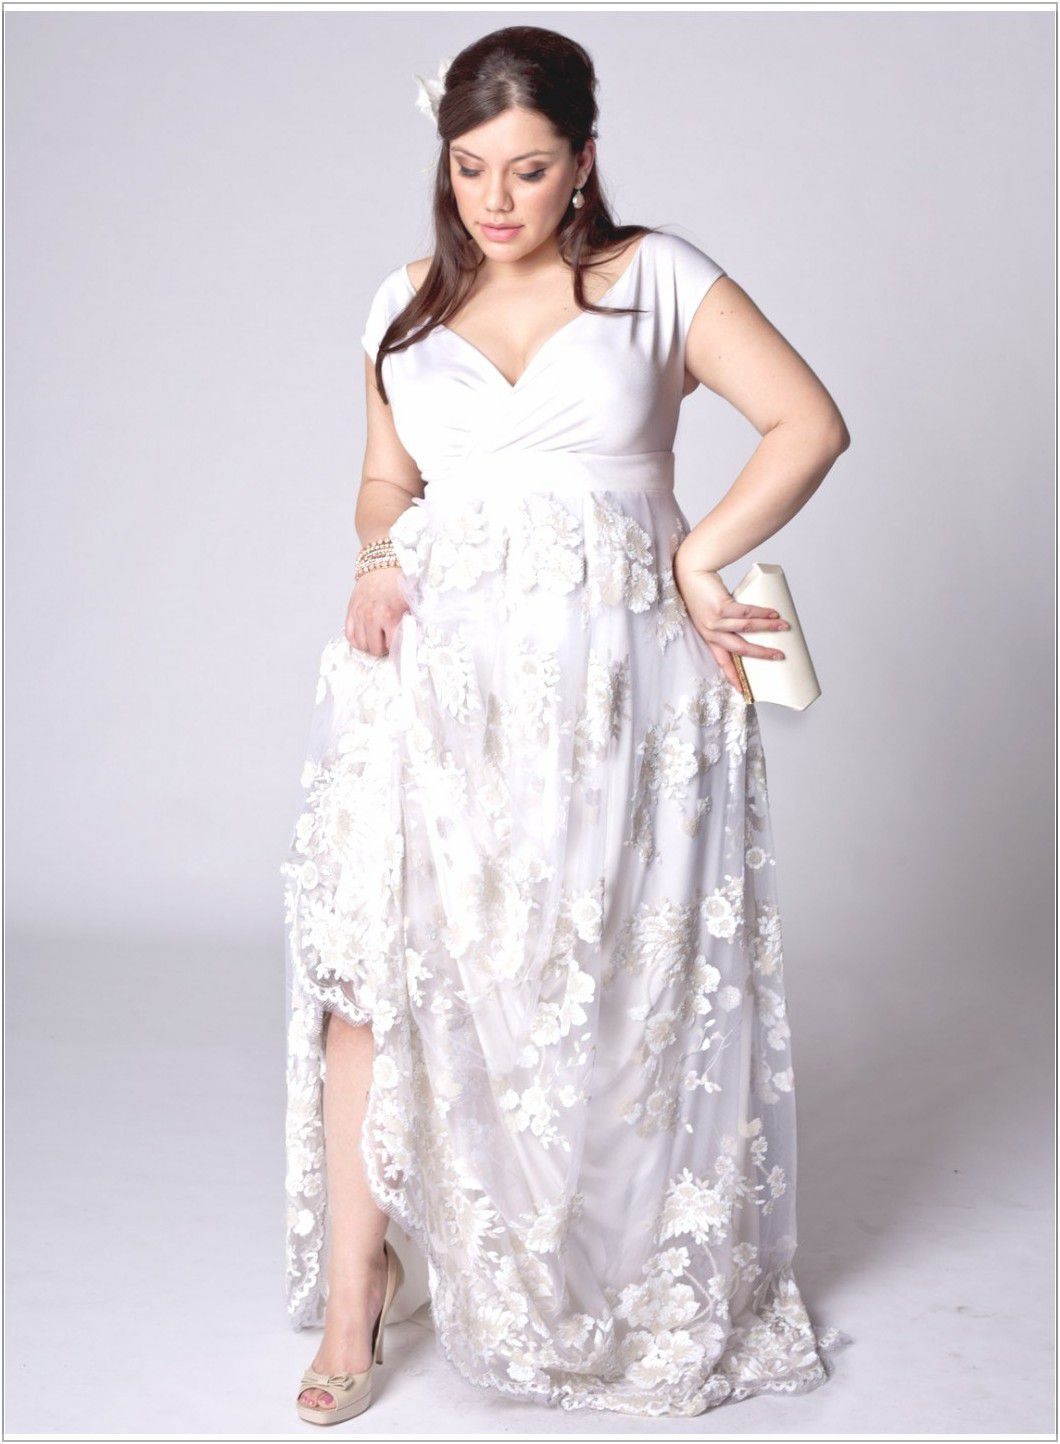 Plus Size Wedding Dresses Casual With Sleeves Short Weddng White Color Dress Inspiration For Women